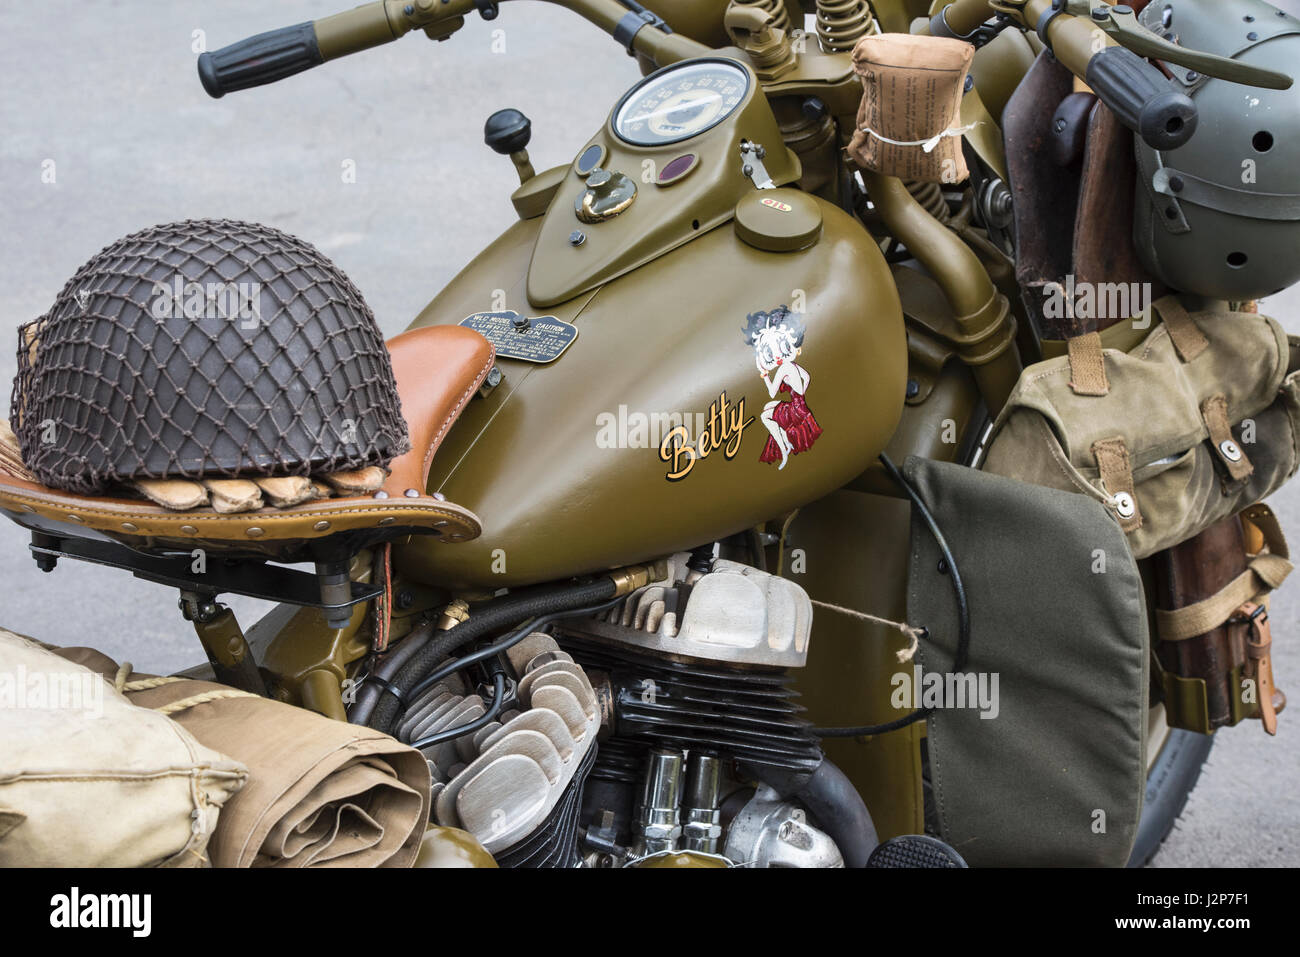 Harley Davidson Prototypes Wwii together with Classic Army Motorcycle moreover Donne E Motori 174 moreover Watch besides 221461719762. on harley davidson army motorcycle